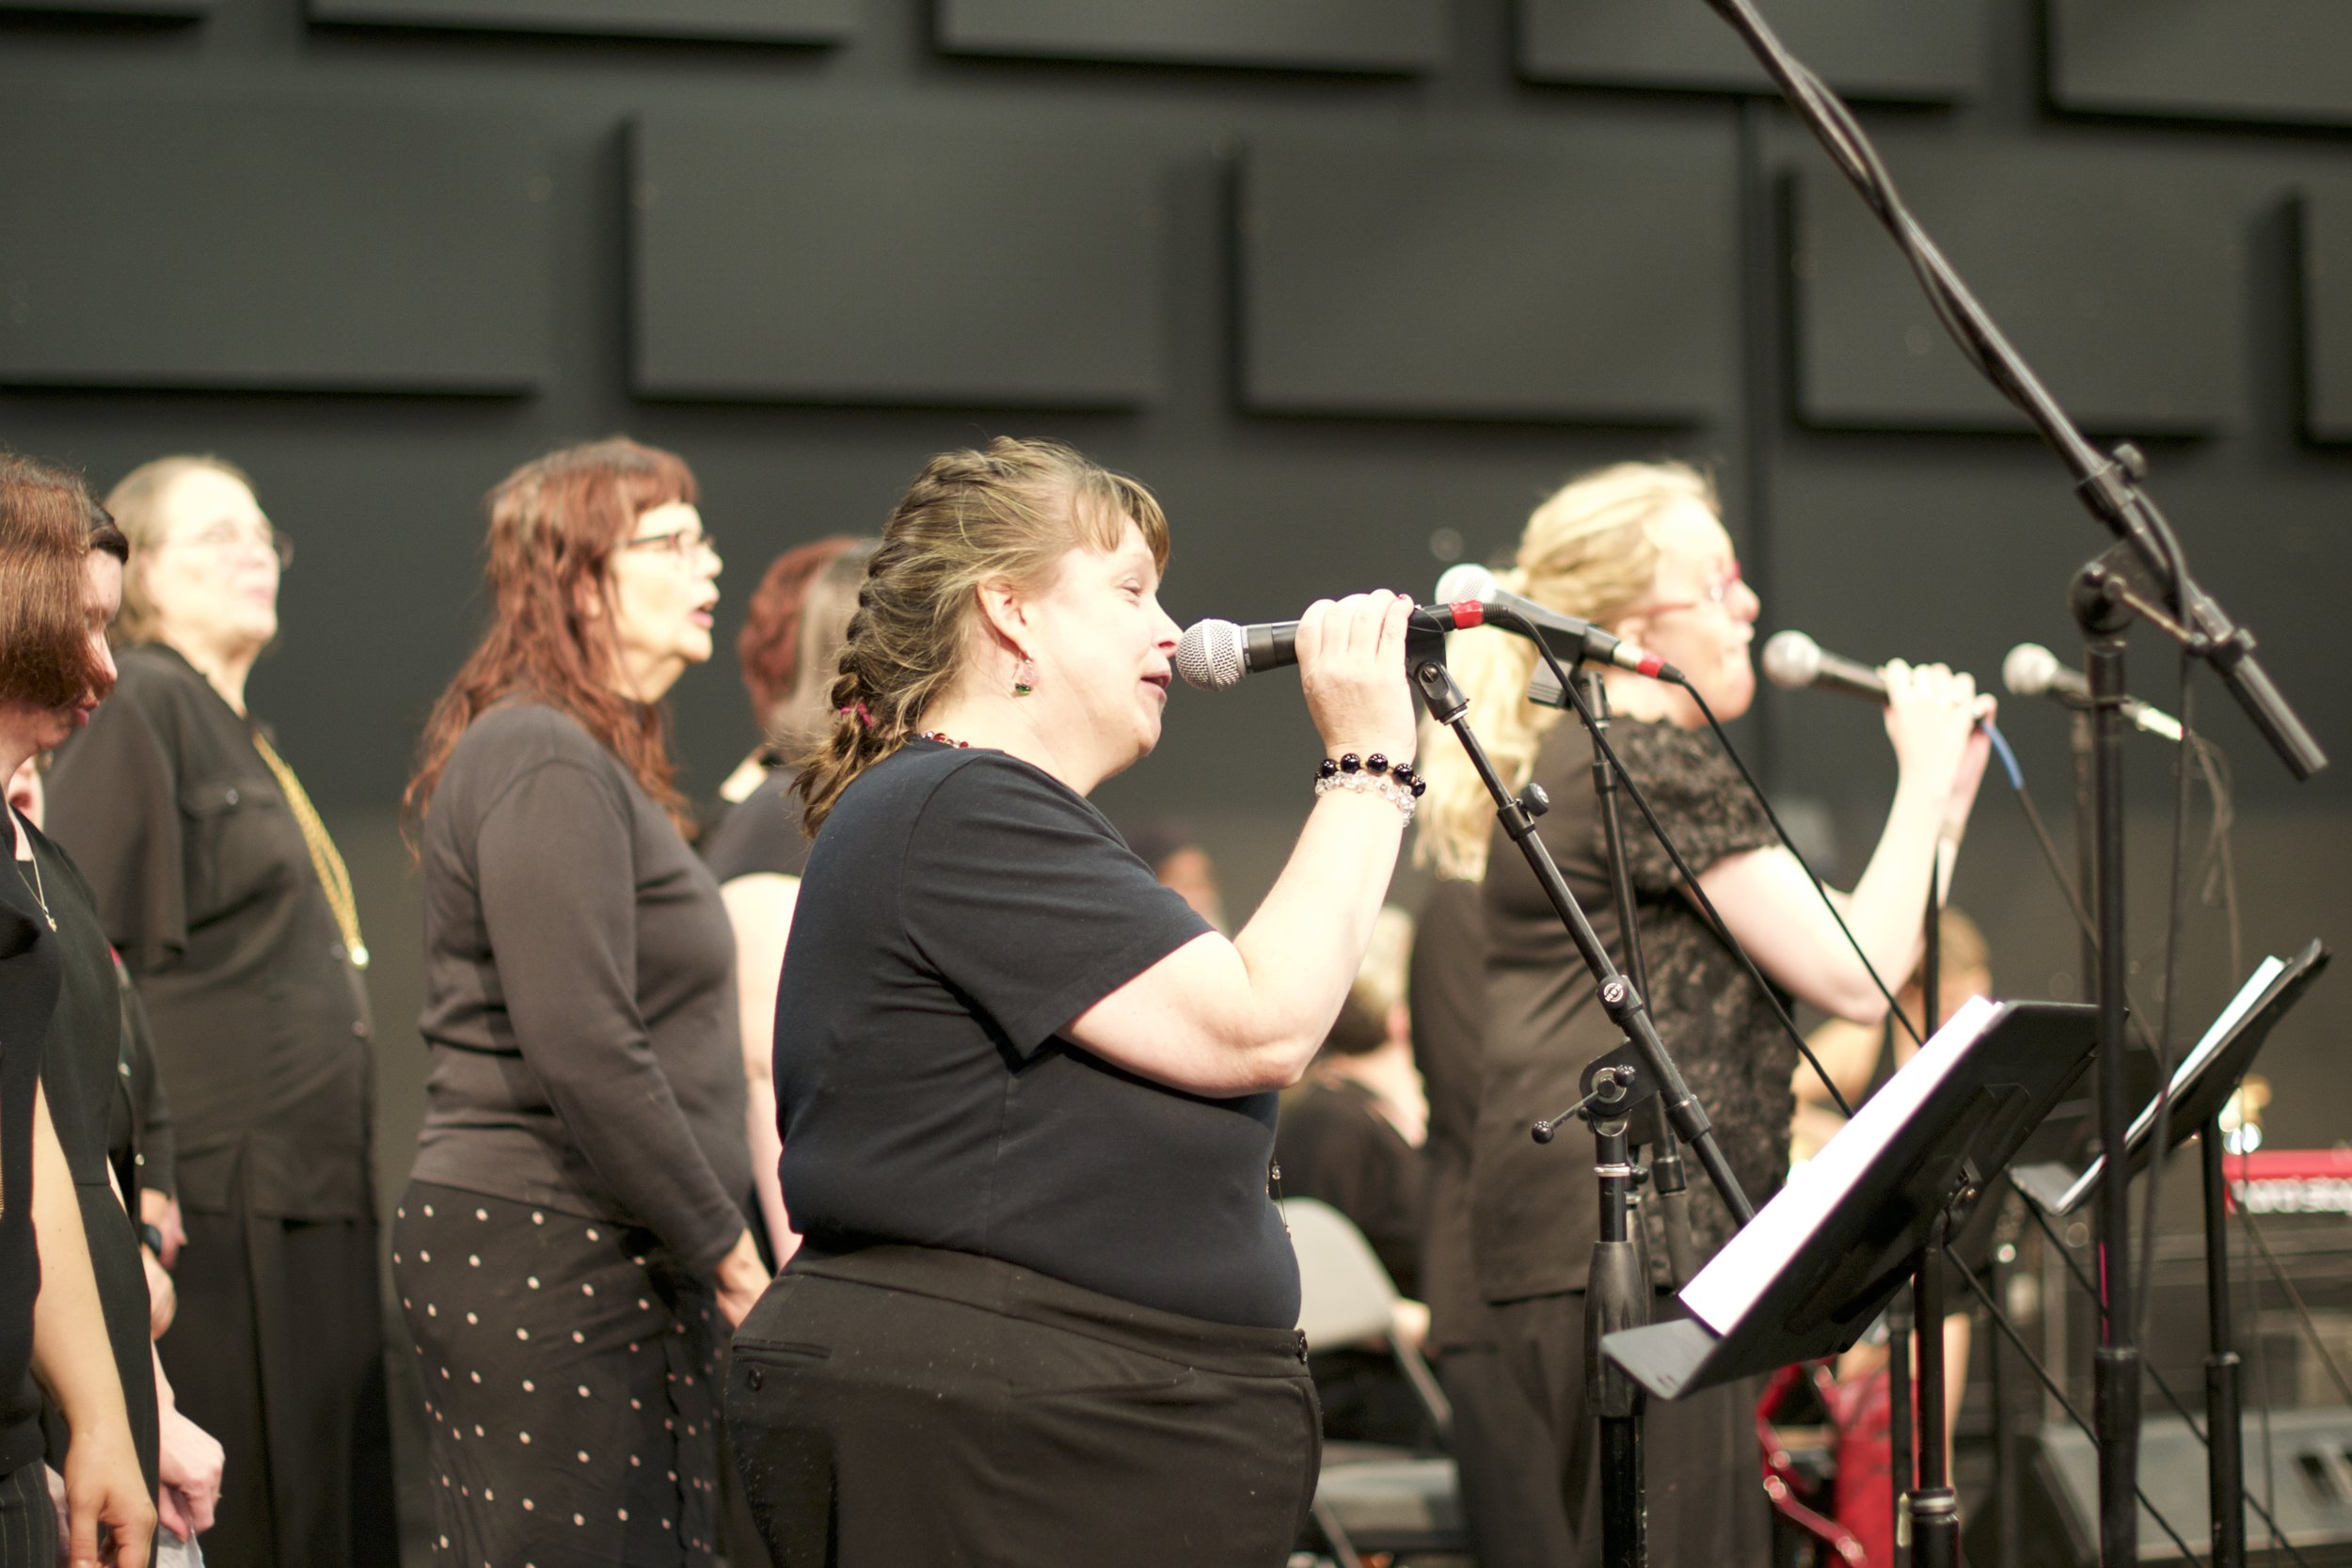 Group of women facing to the side and singing into microphones